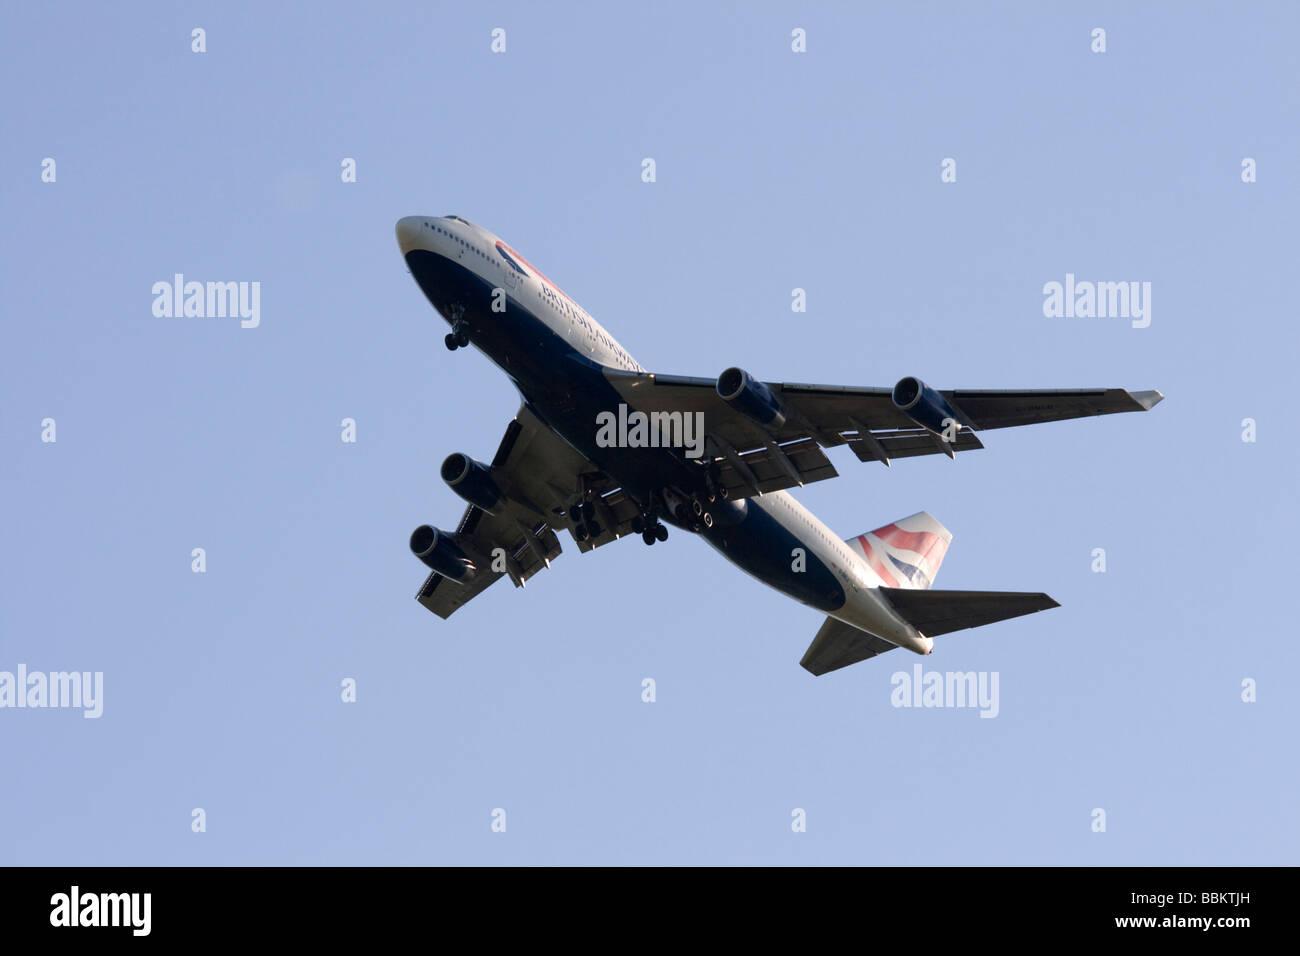 Commercial jet airliner, British Airways, Boeing 747-436 - Stock Image